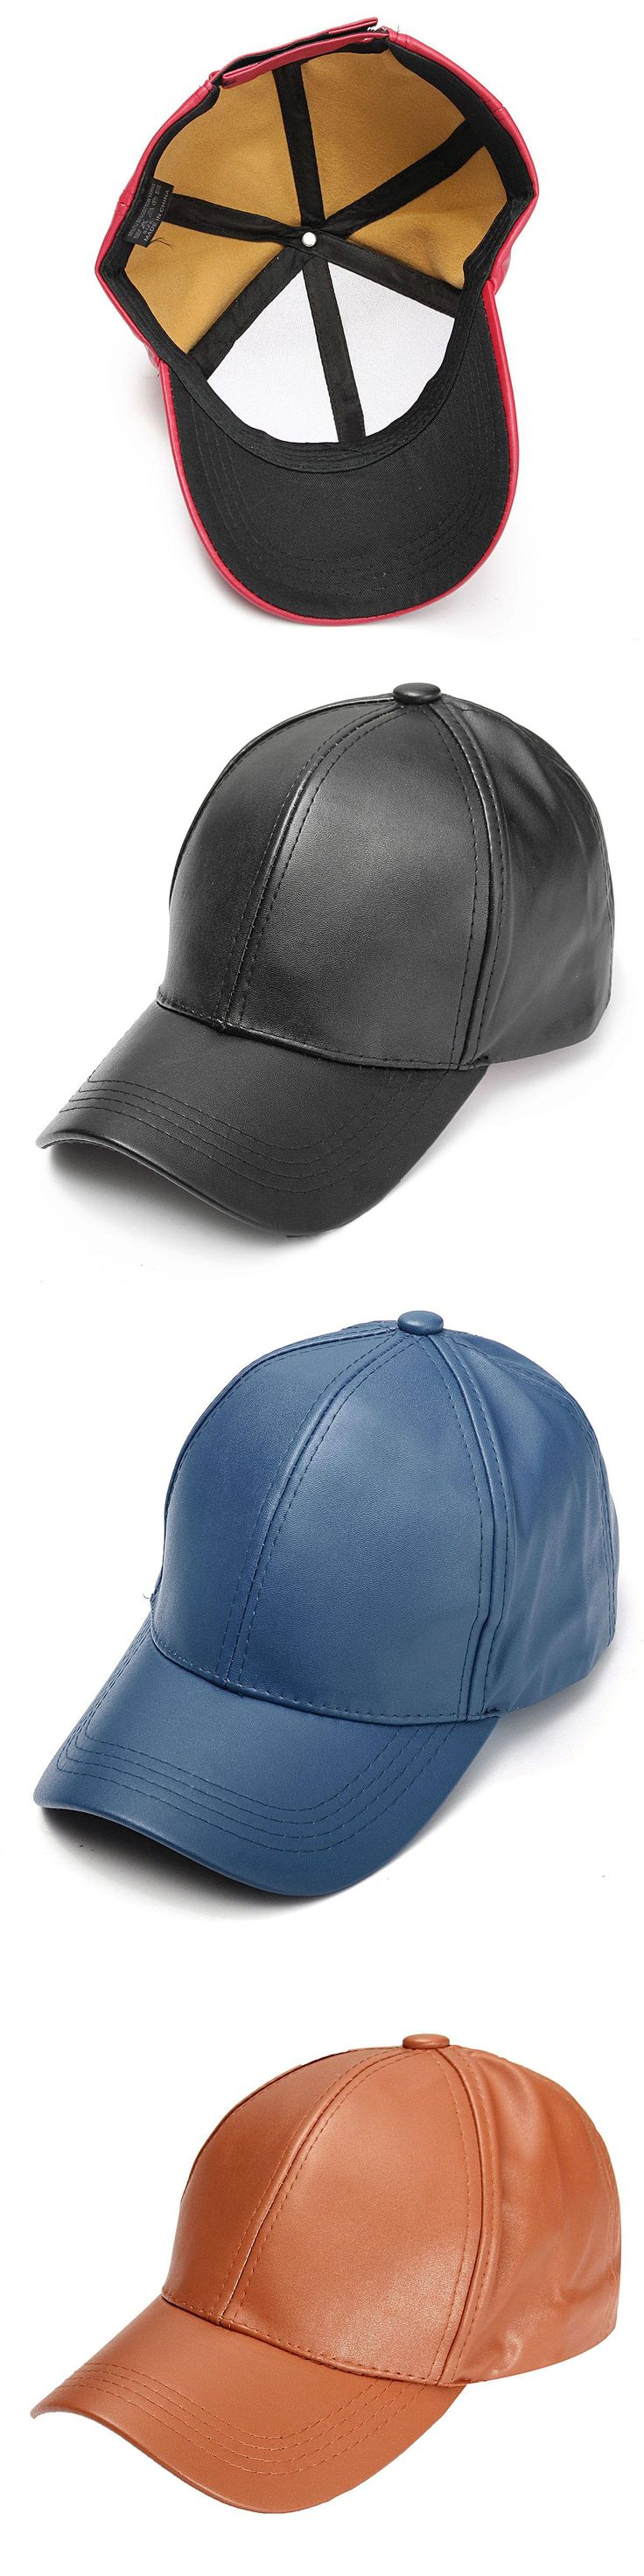 best 25+ leather baseball cap ideas on pinterest | trucker hats